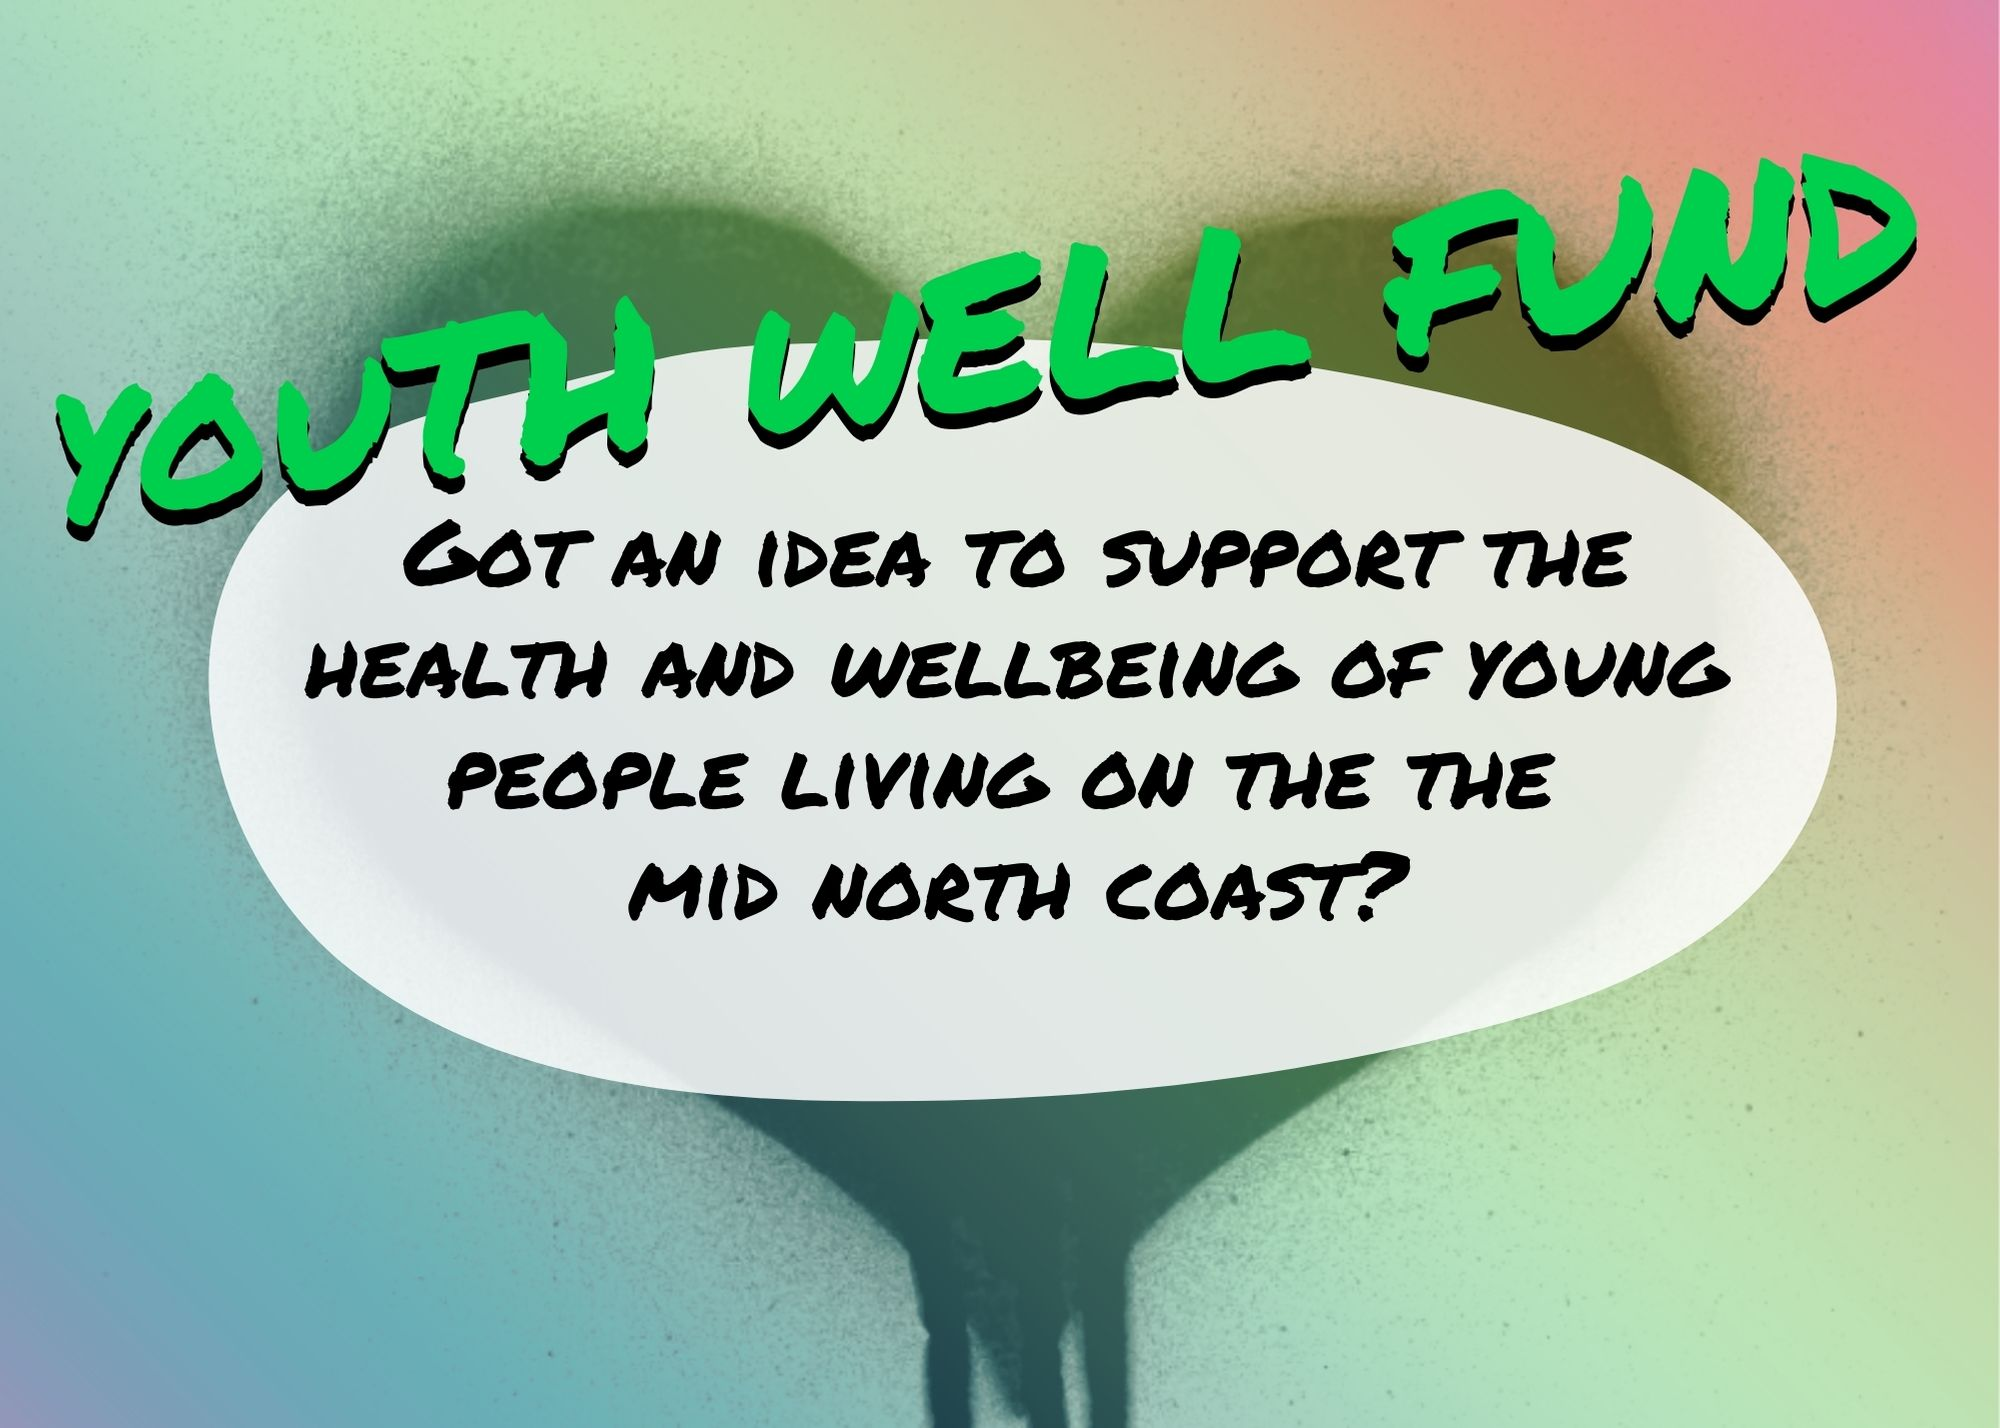 Youth Well Fund - Got an idea to support the health and wellbeing of young people living on the mid north coast?